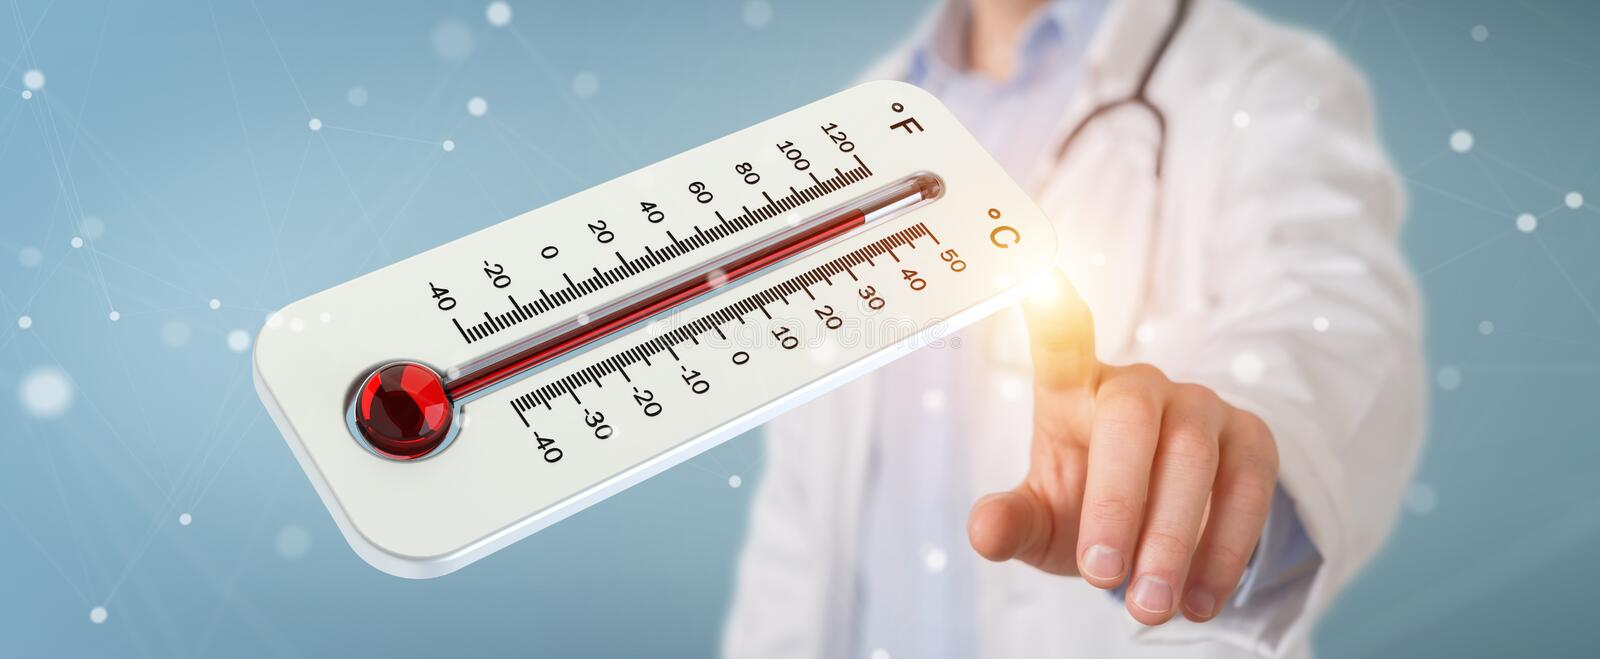 Doctor holding red hot digital thermometer 3D rendering stock illustration